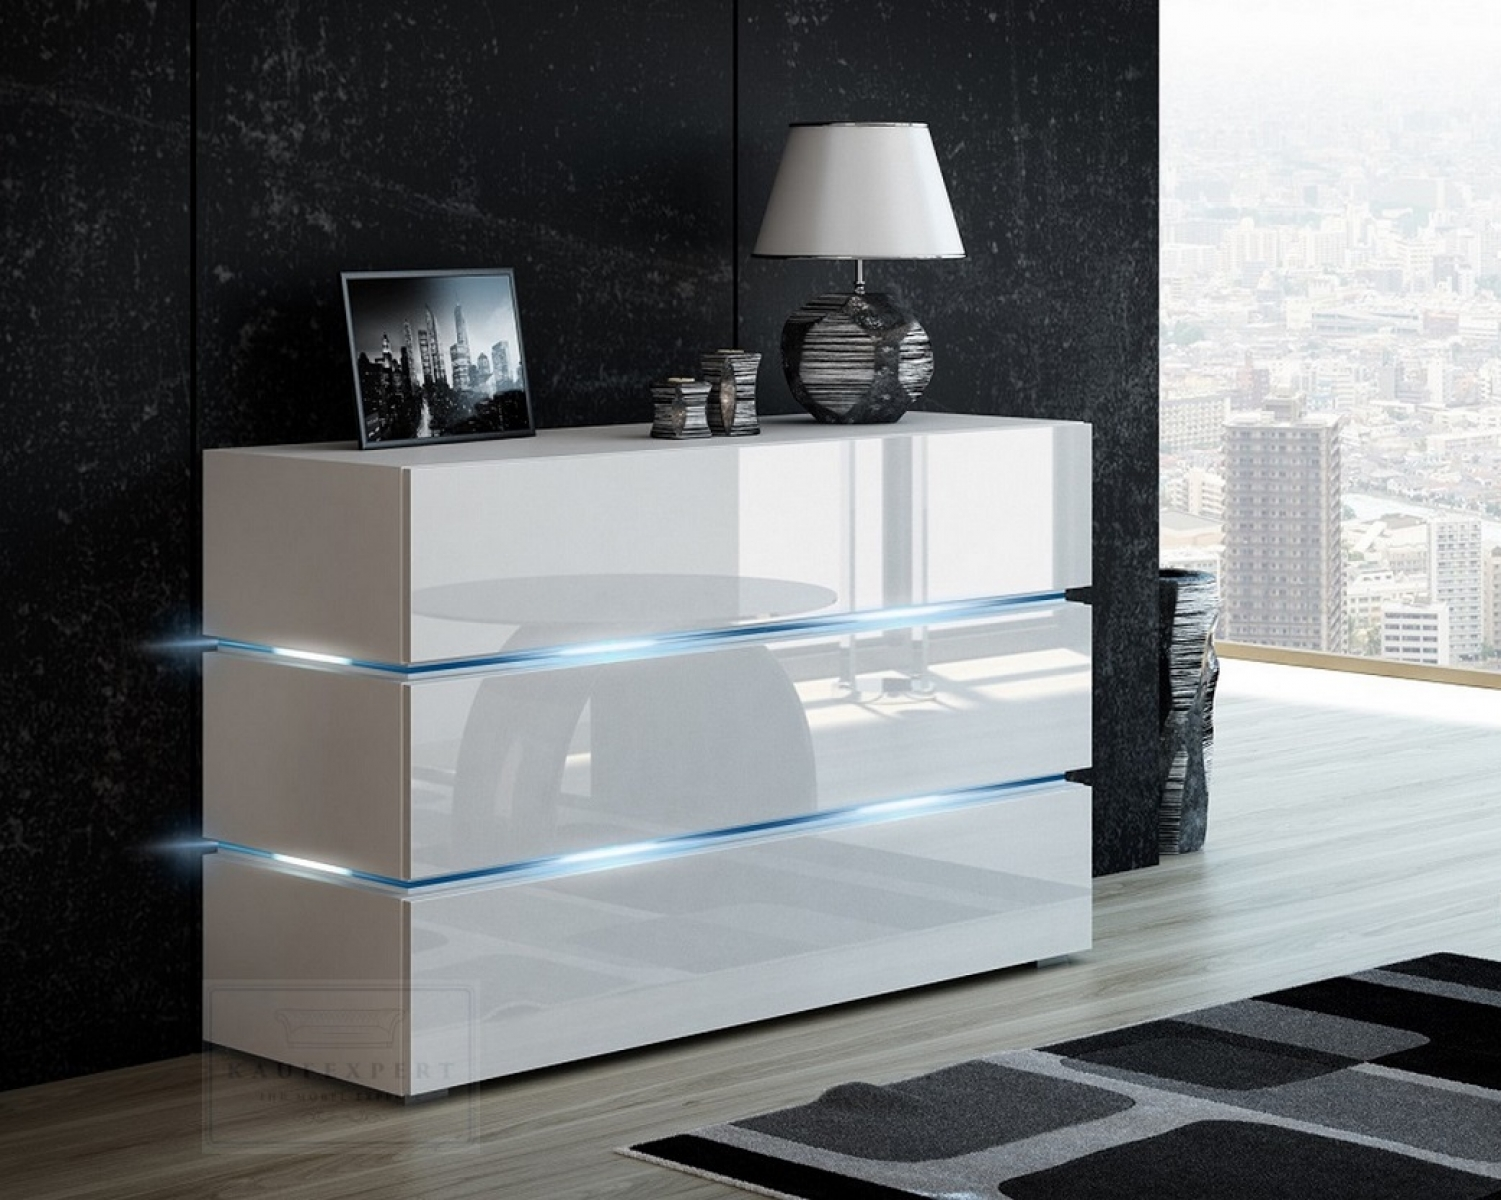 kaufexpert kommode shine sideboard 90 cm wei hochglanz wei led beleuchtung modern design tv. Black Bedroom Furniture Sets. Home Design Ideas